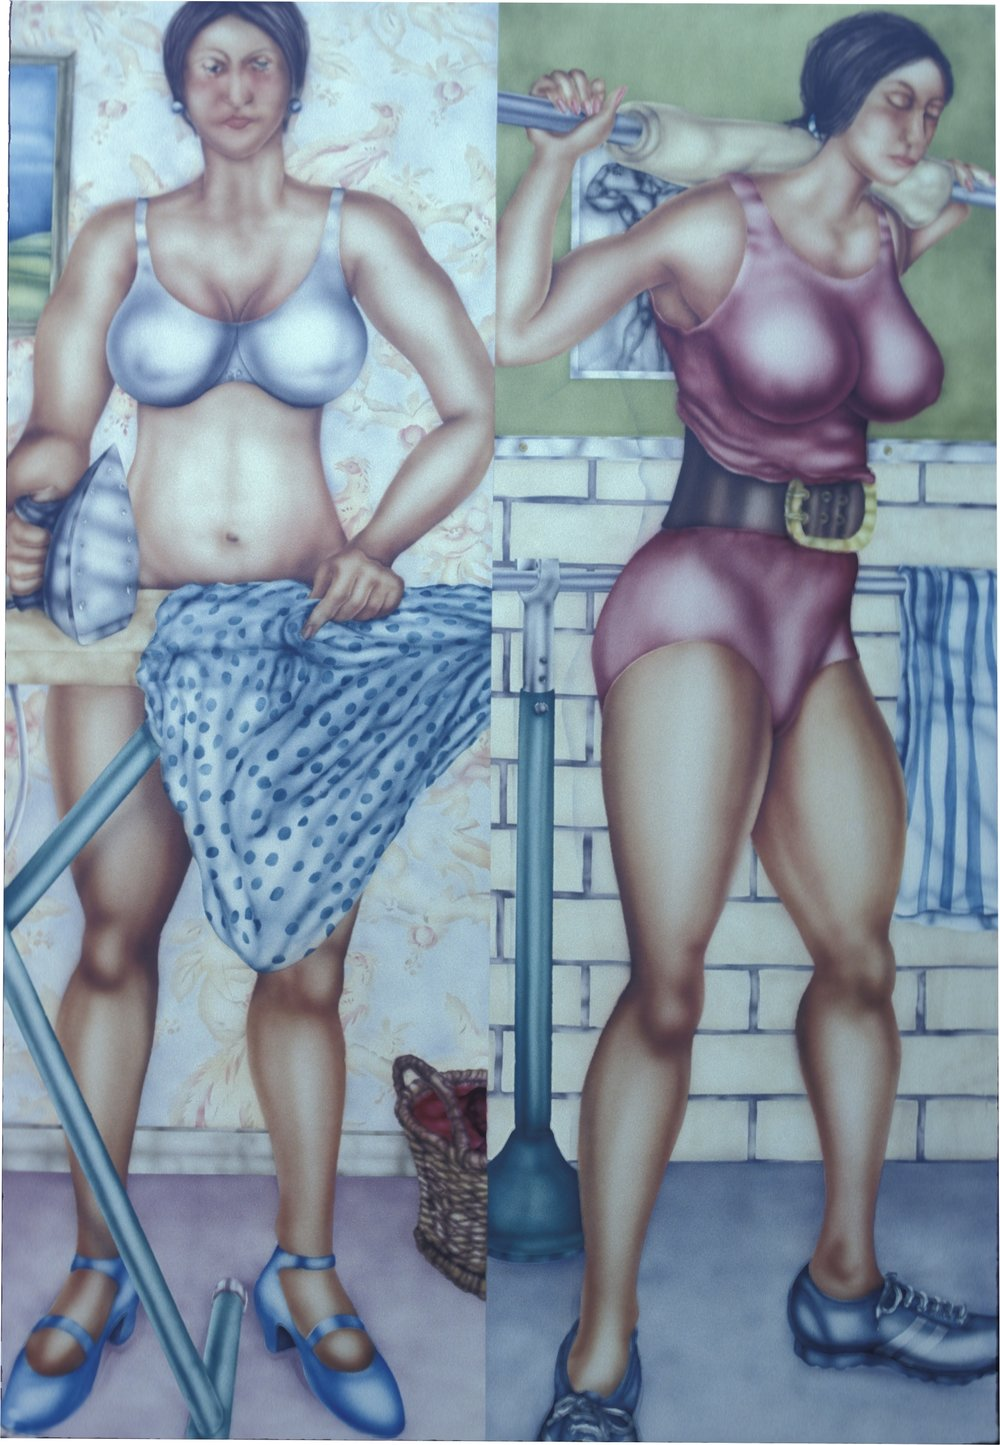 Sisters,  1983  enamel on marine wood c. 180 x 120 cm. (private collection Brisbane)